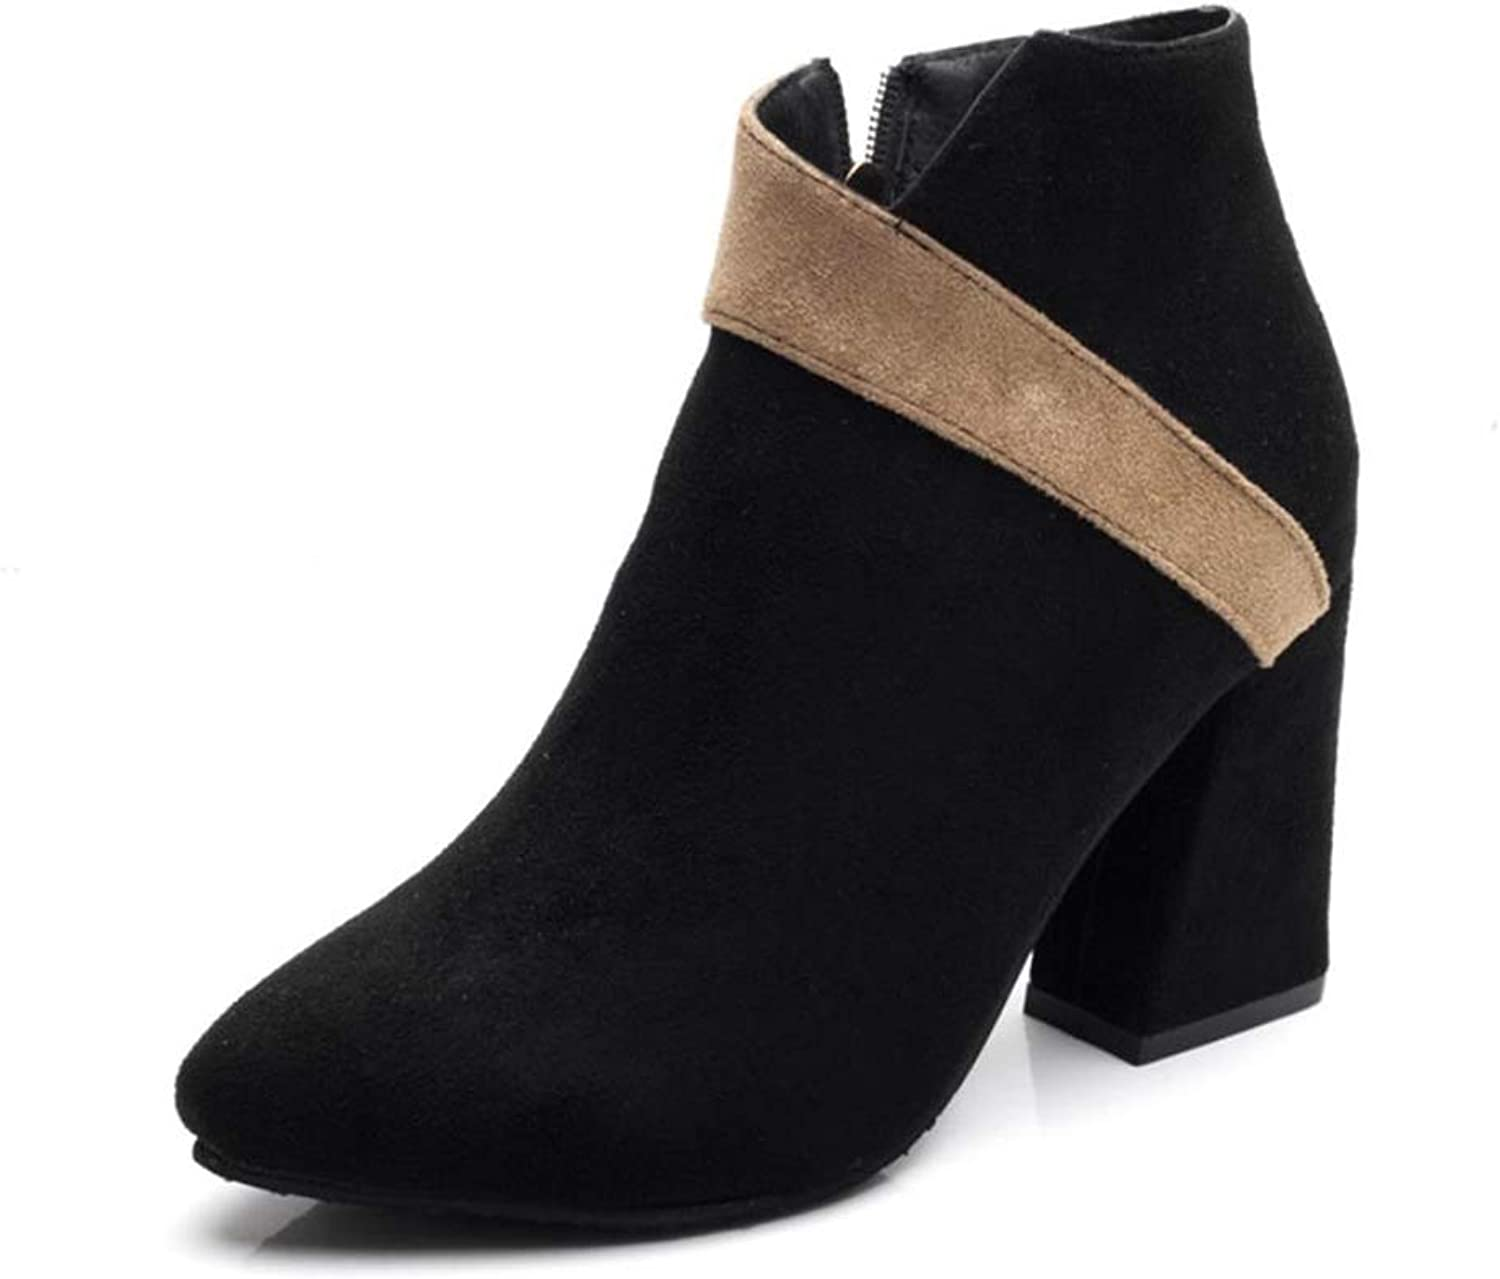 IINFINE Boots for Women Ankle Winter Low Heel Western Side Zipper Pointed Toe Solid color